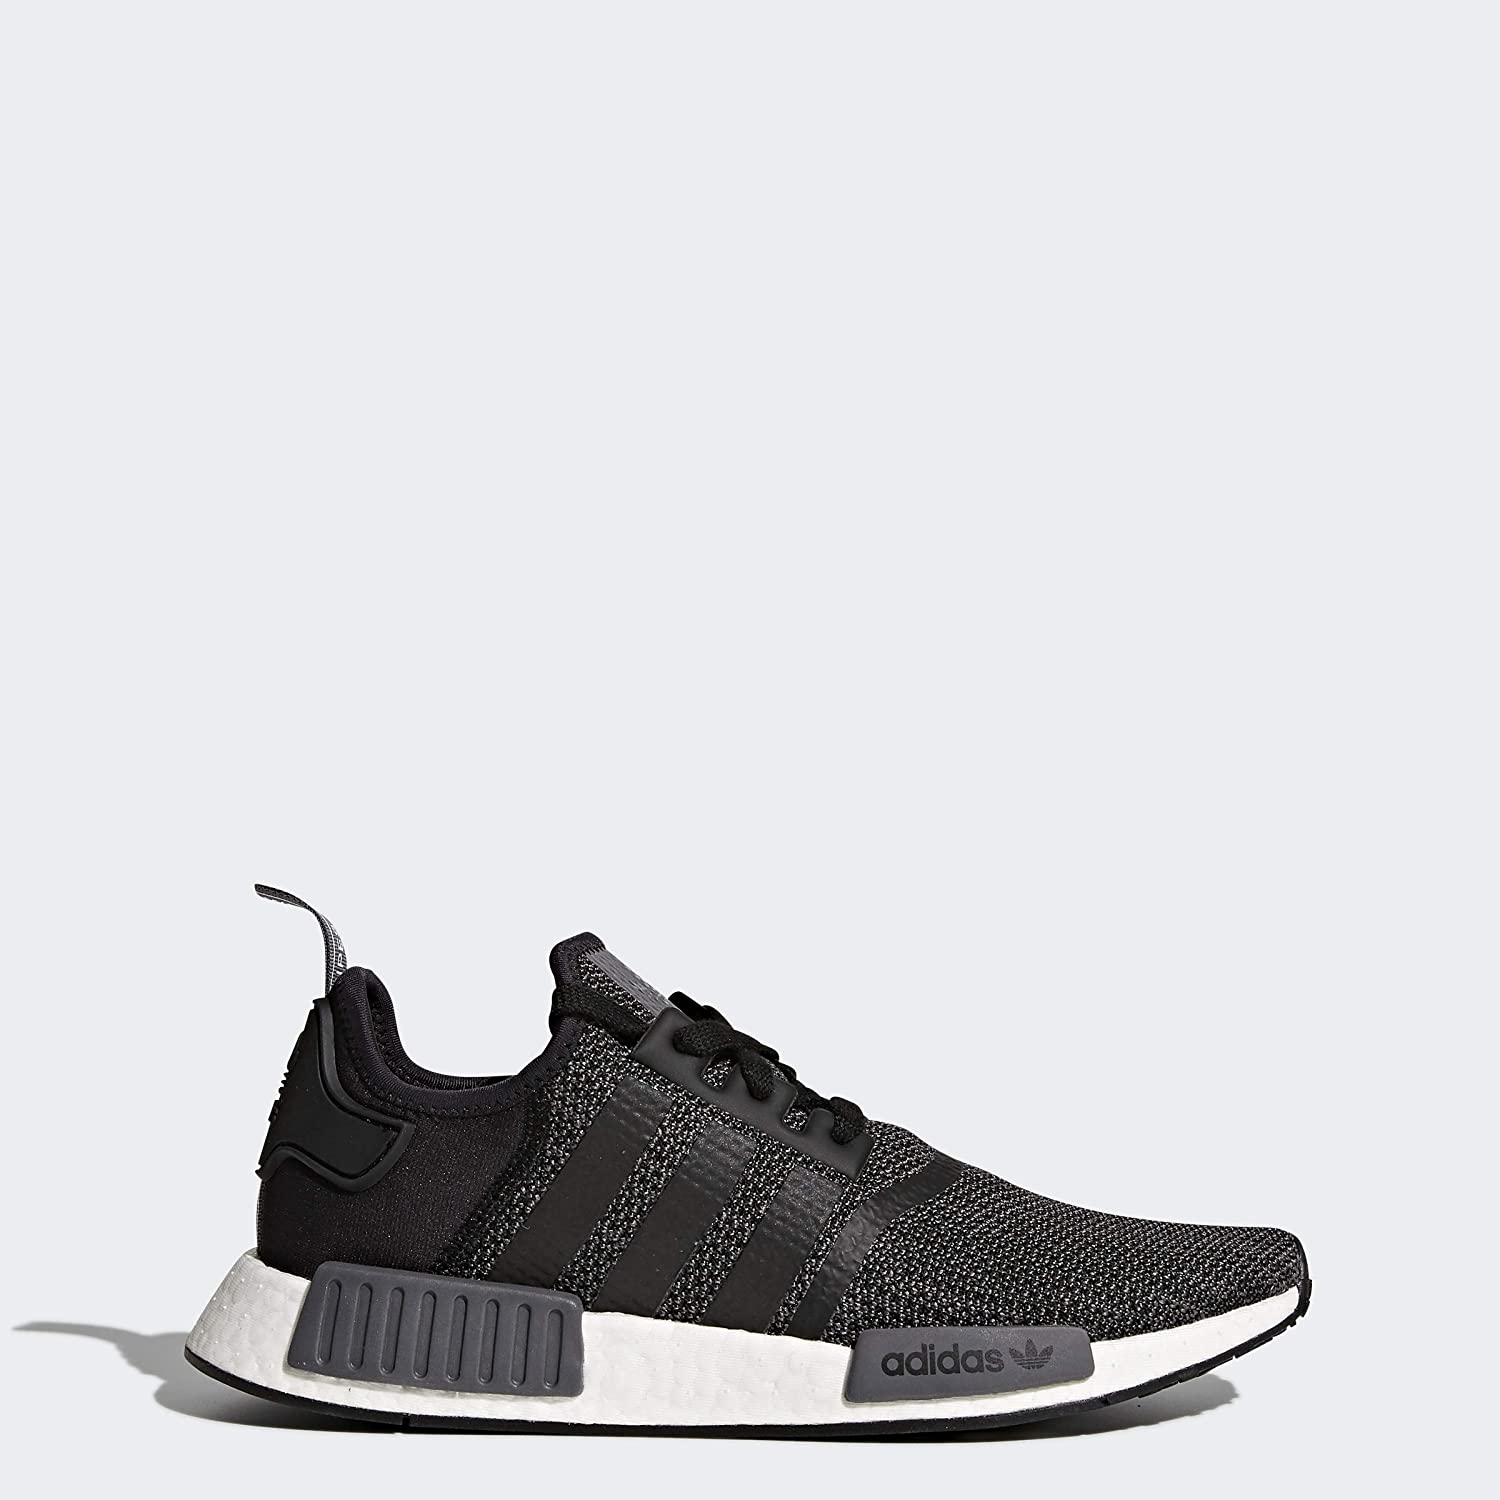 adidas NMD_R1 Shoes Men s, Black, Size 8